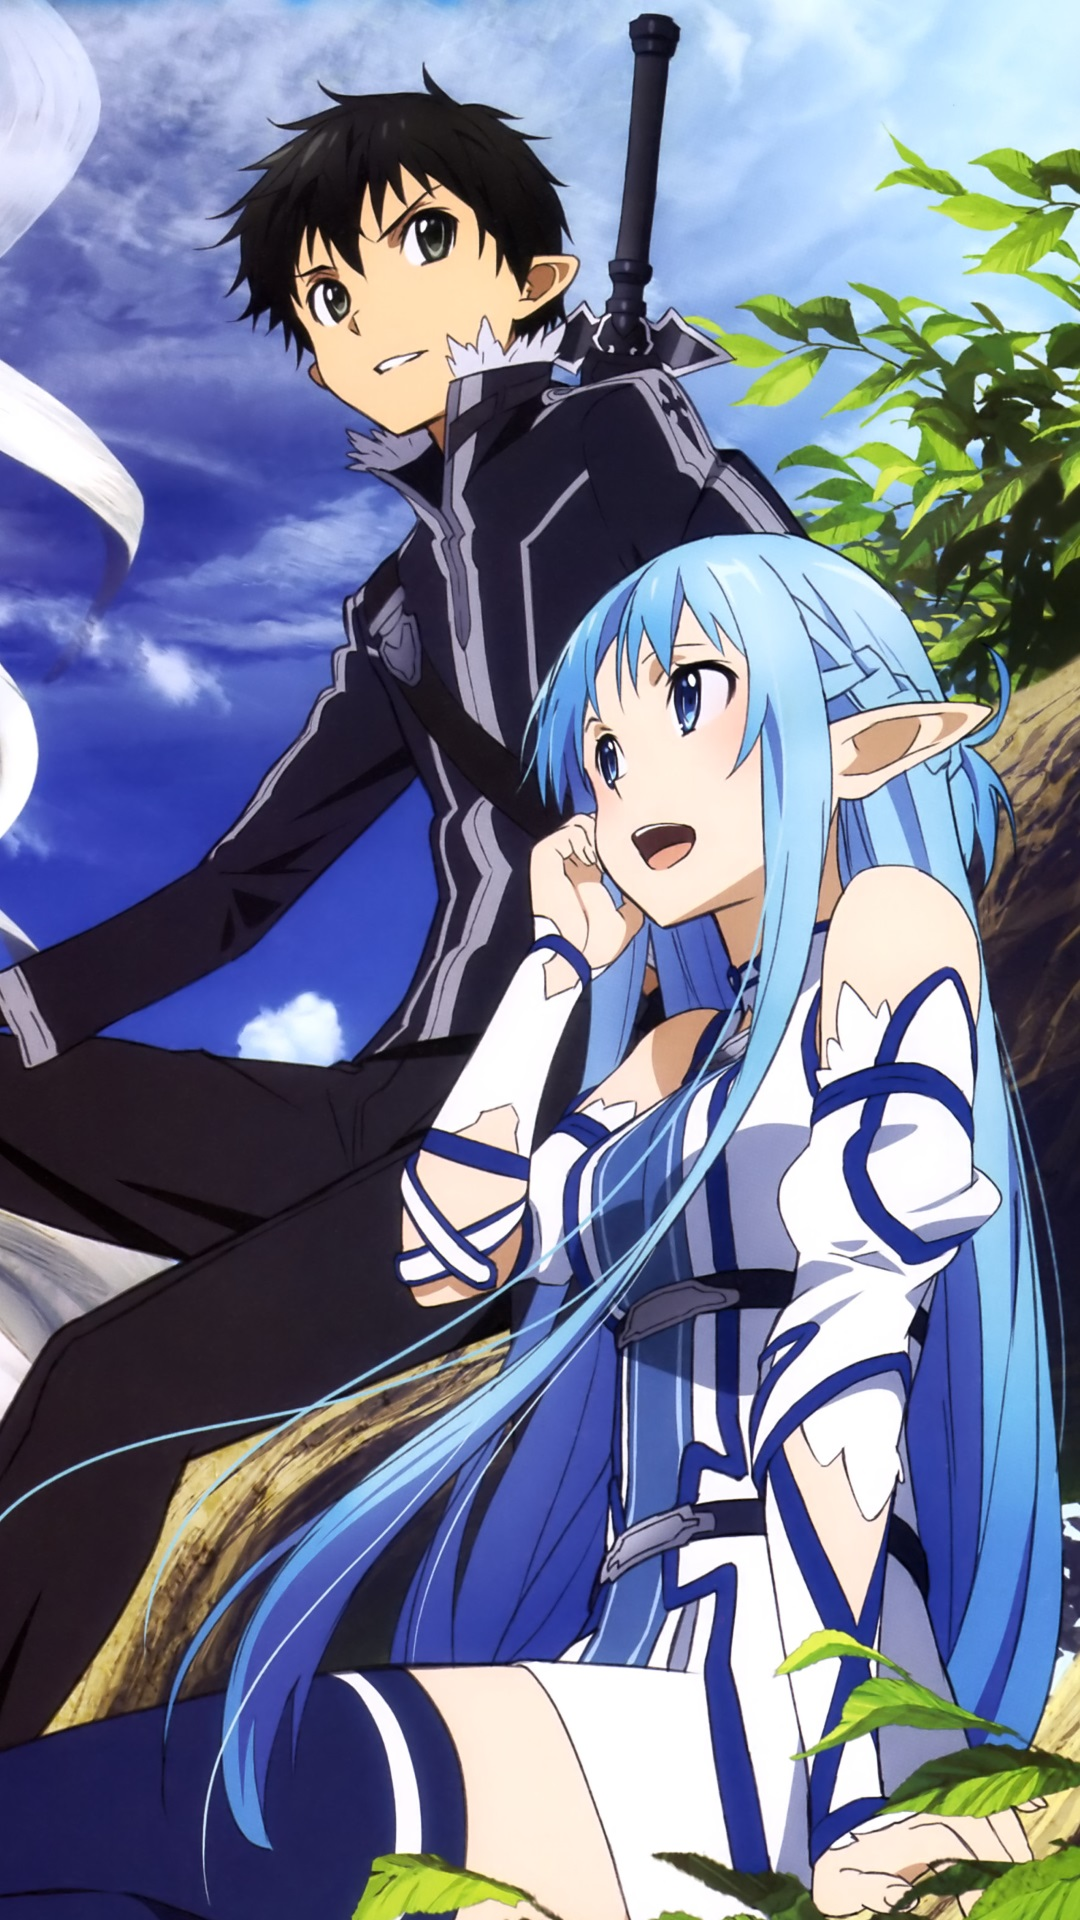 Sword Art Online 2 Kirito Asuna Sword Art Online Lost Song